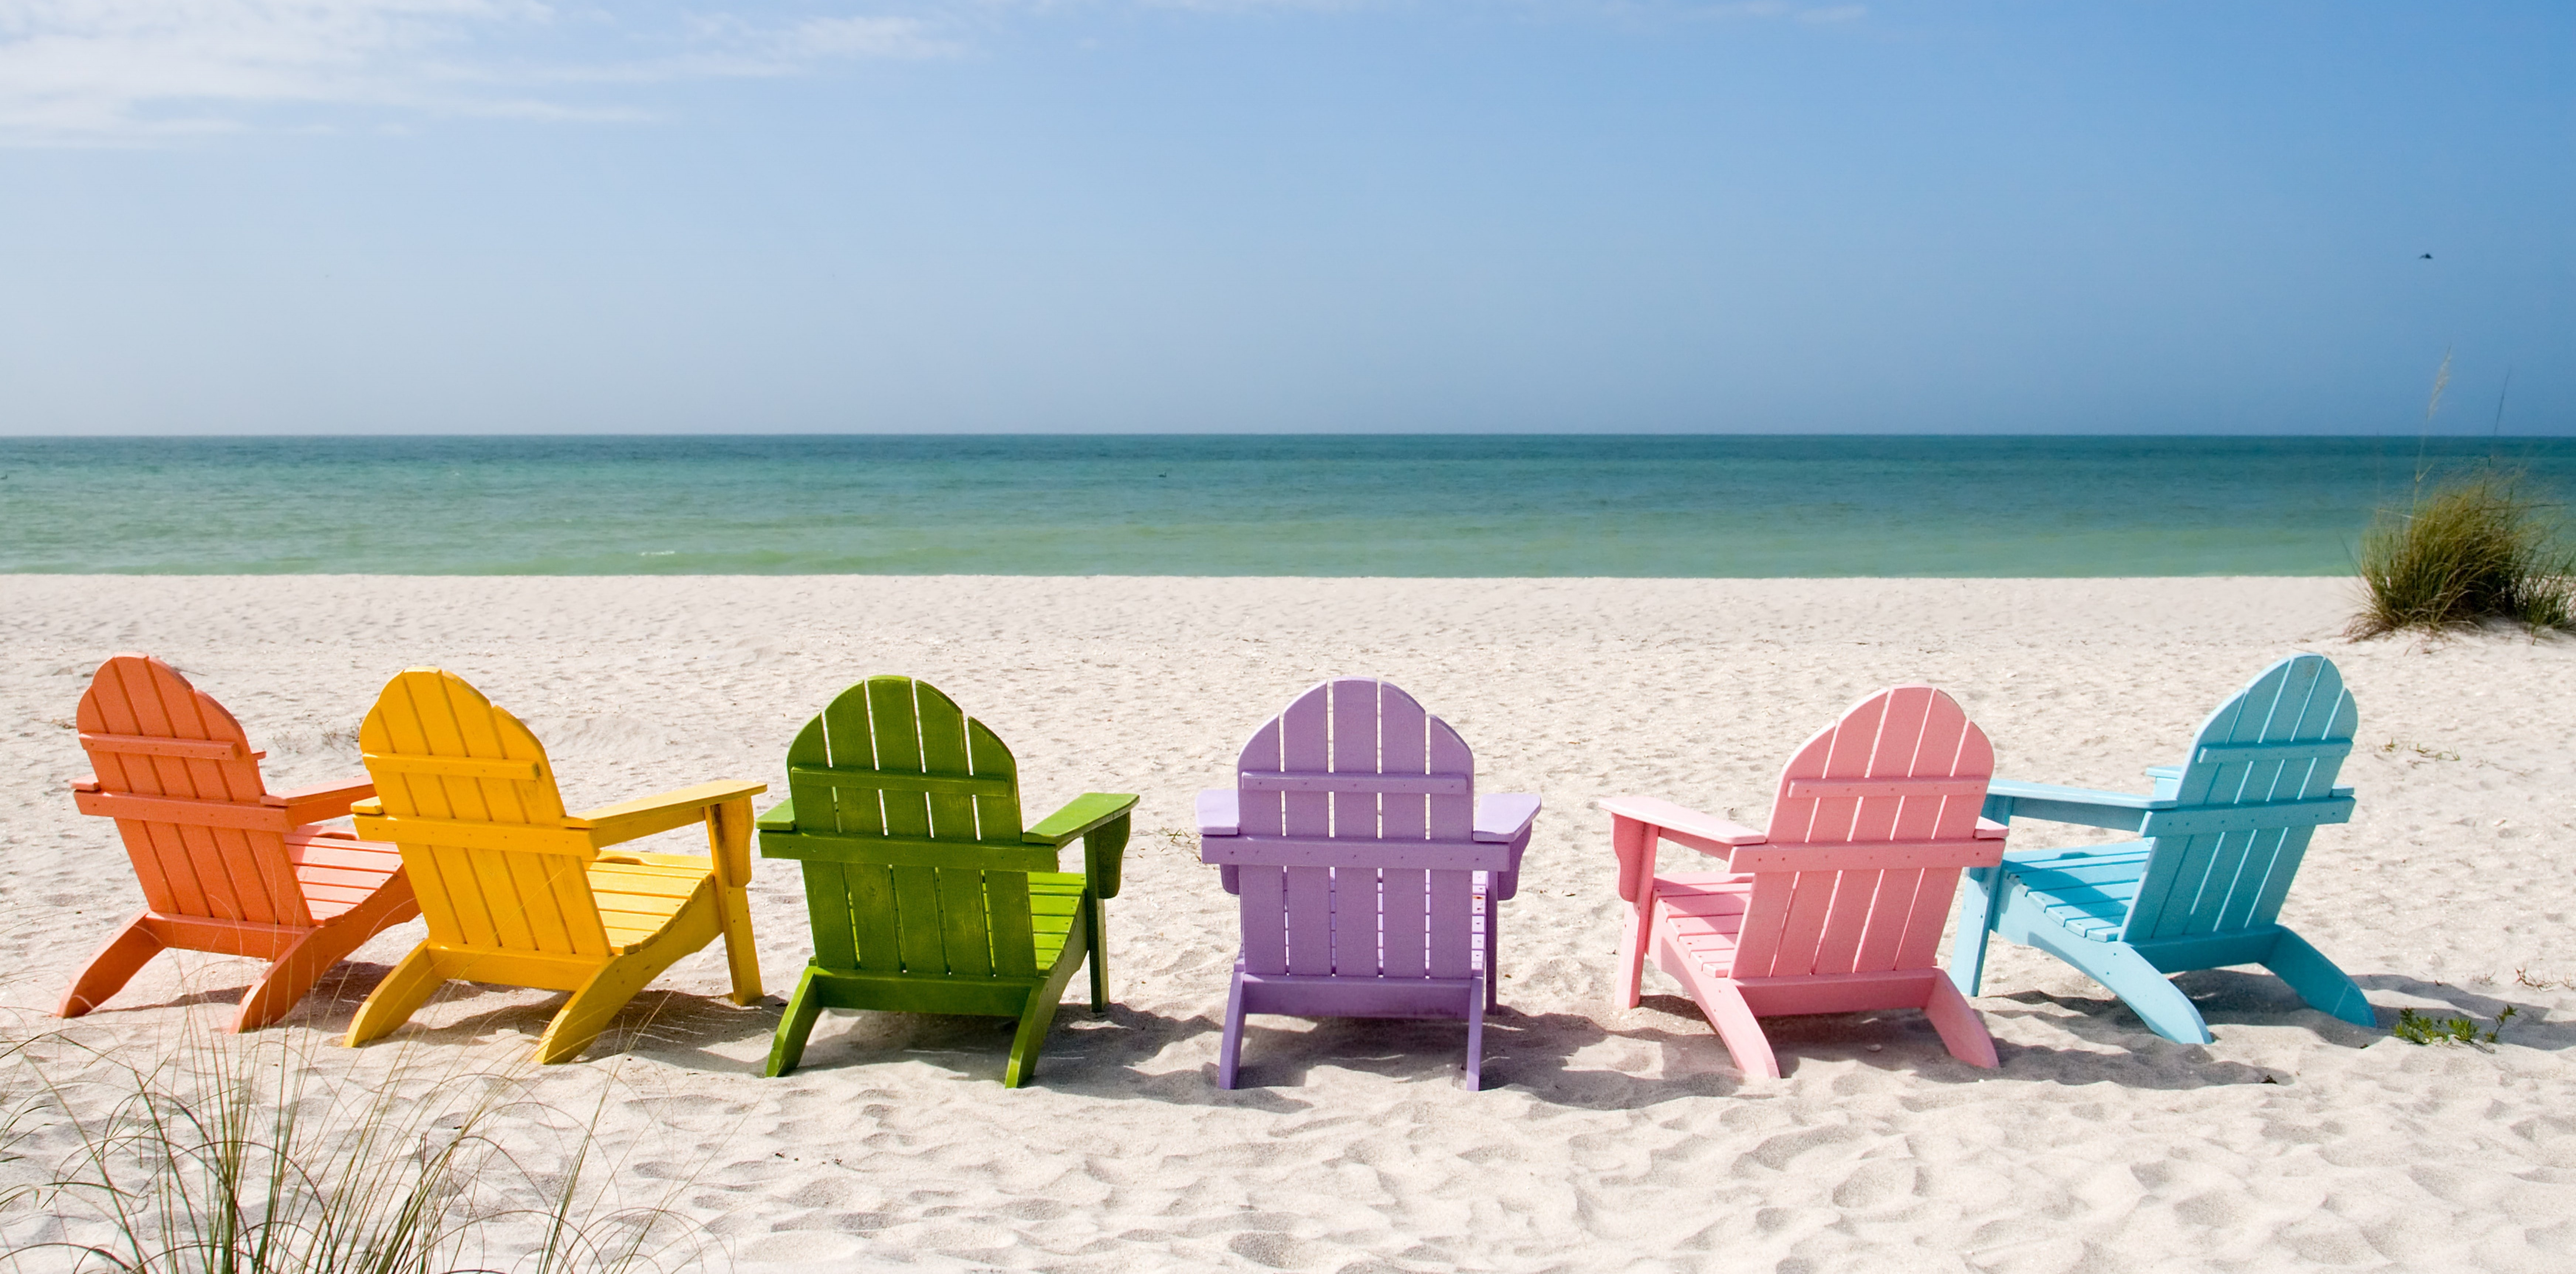 south-carolina-beach-chairs-rainbow-749455-edited.jpg